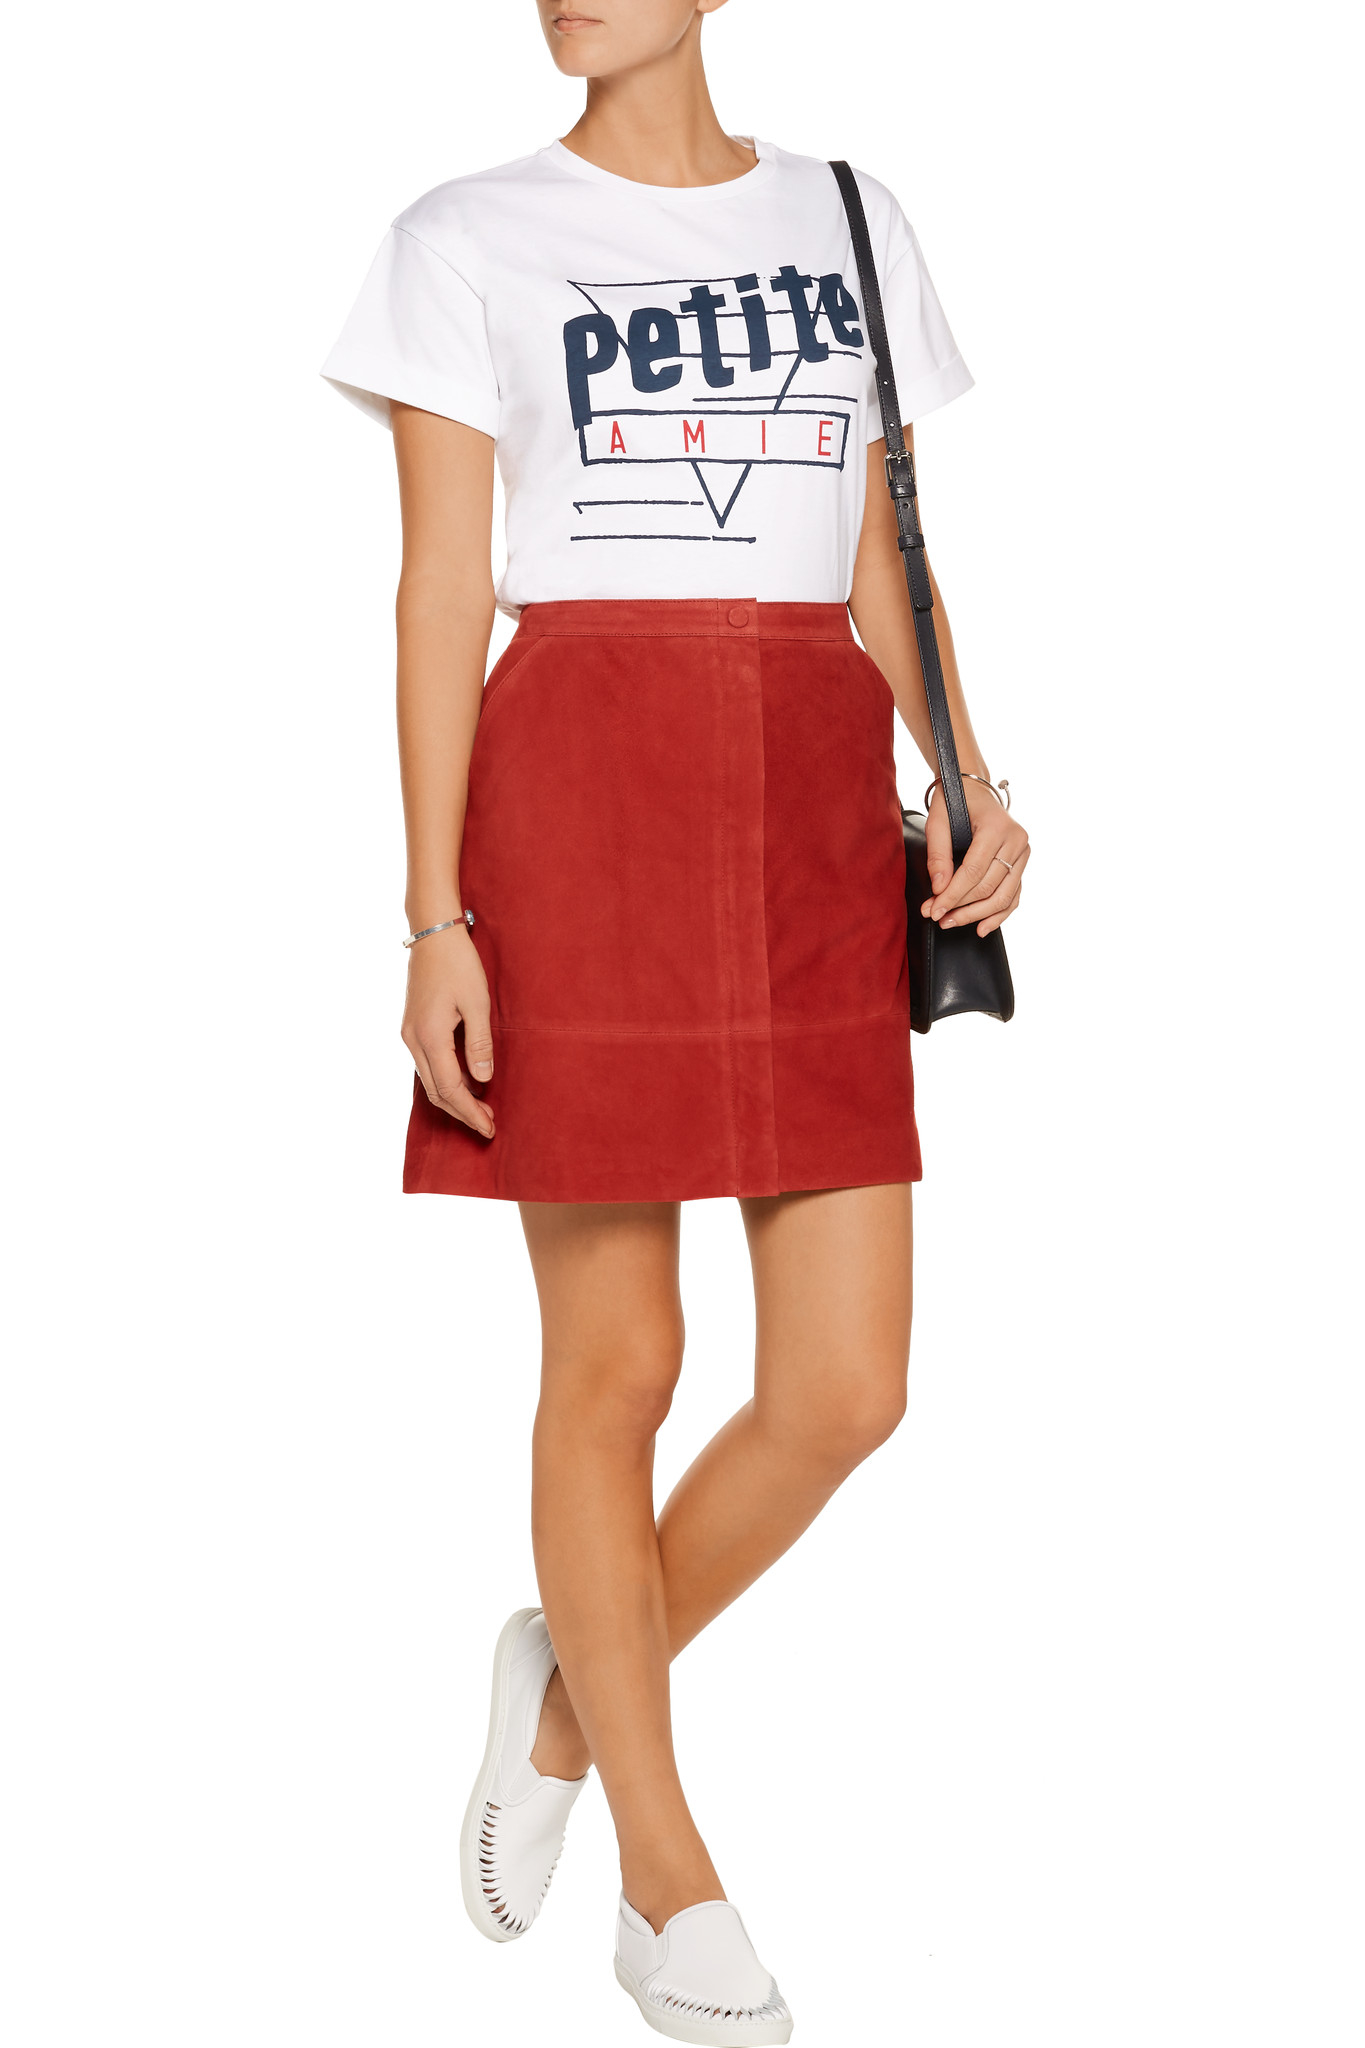 Lyst Tre C Cile Petite Amie Cotton Jersey T Shirt In White